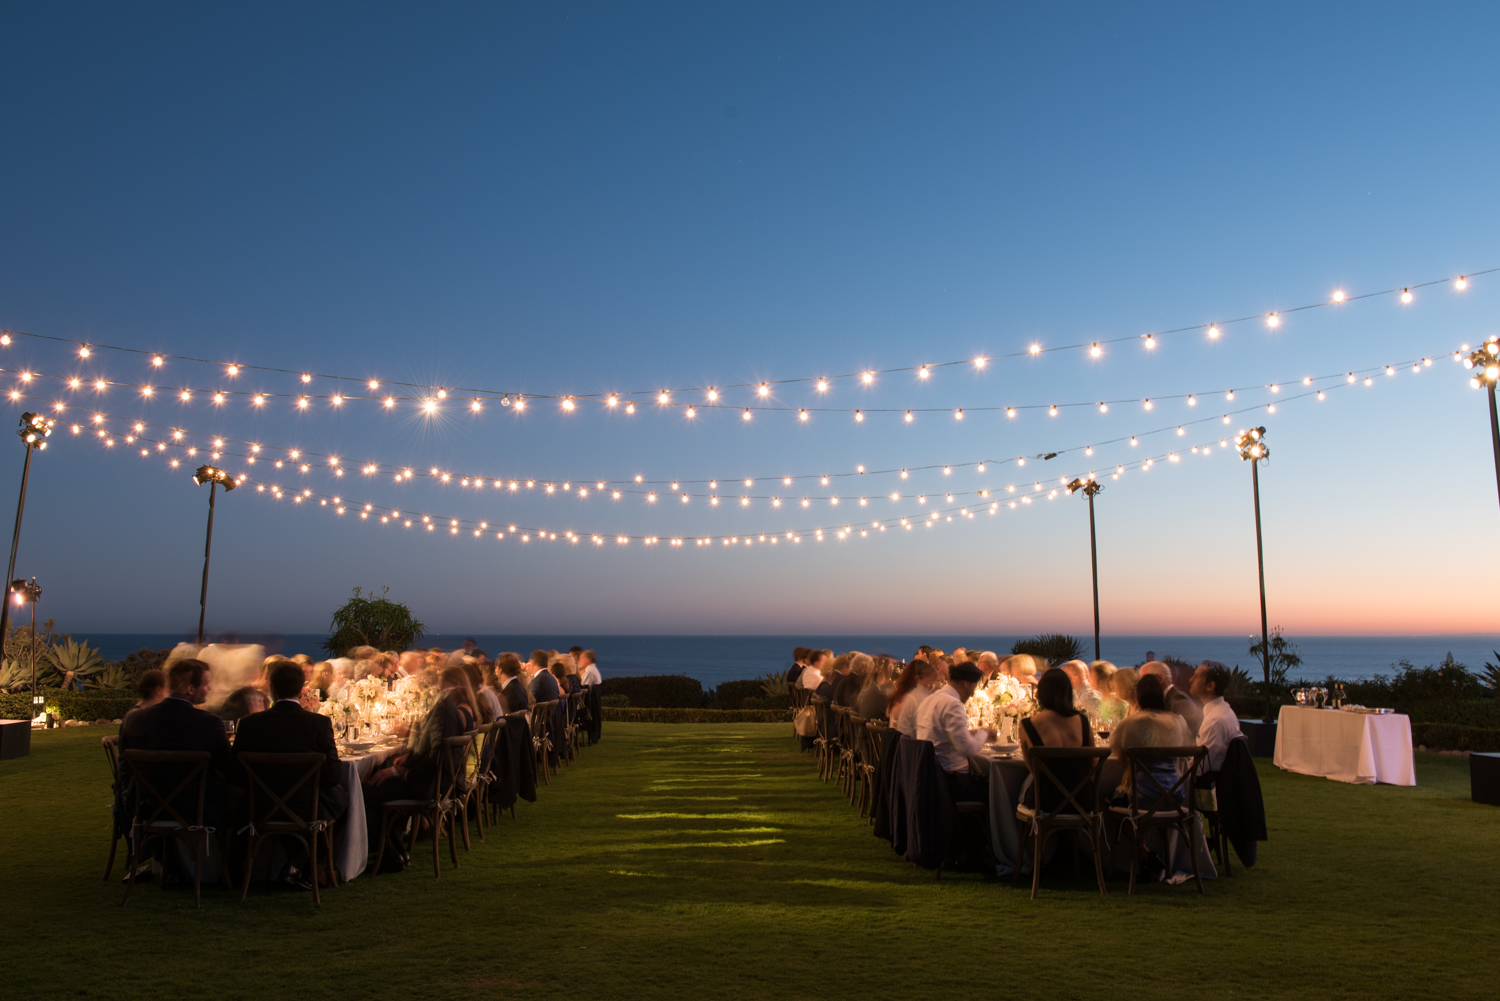 Dusk falls over the outdoor beach reception, guests enjoy dinner lit by romantic string lights; photo by Sylvie Gil